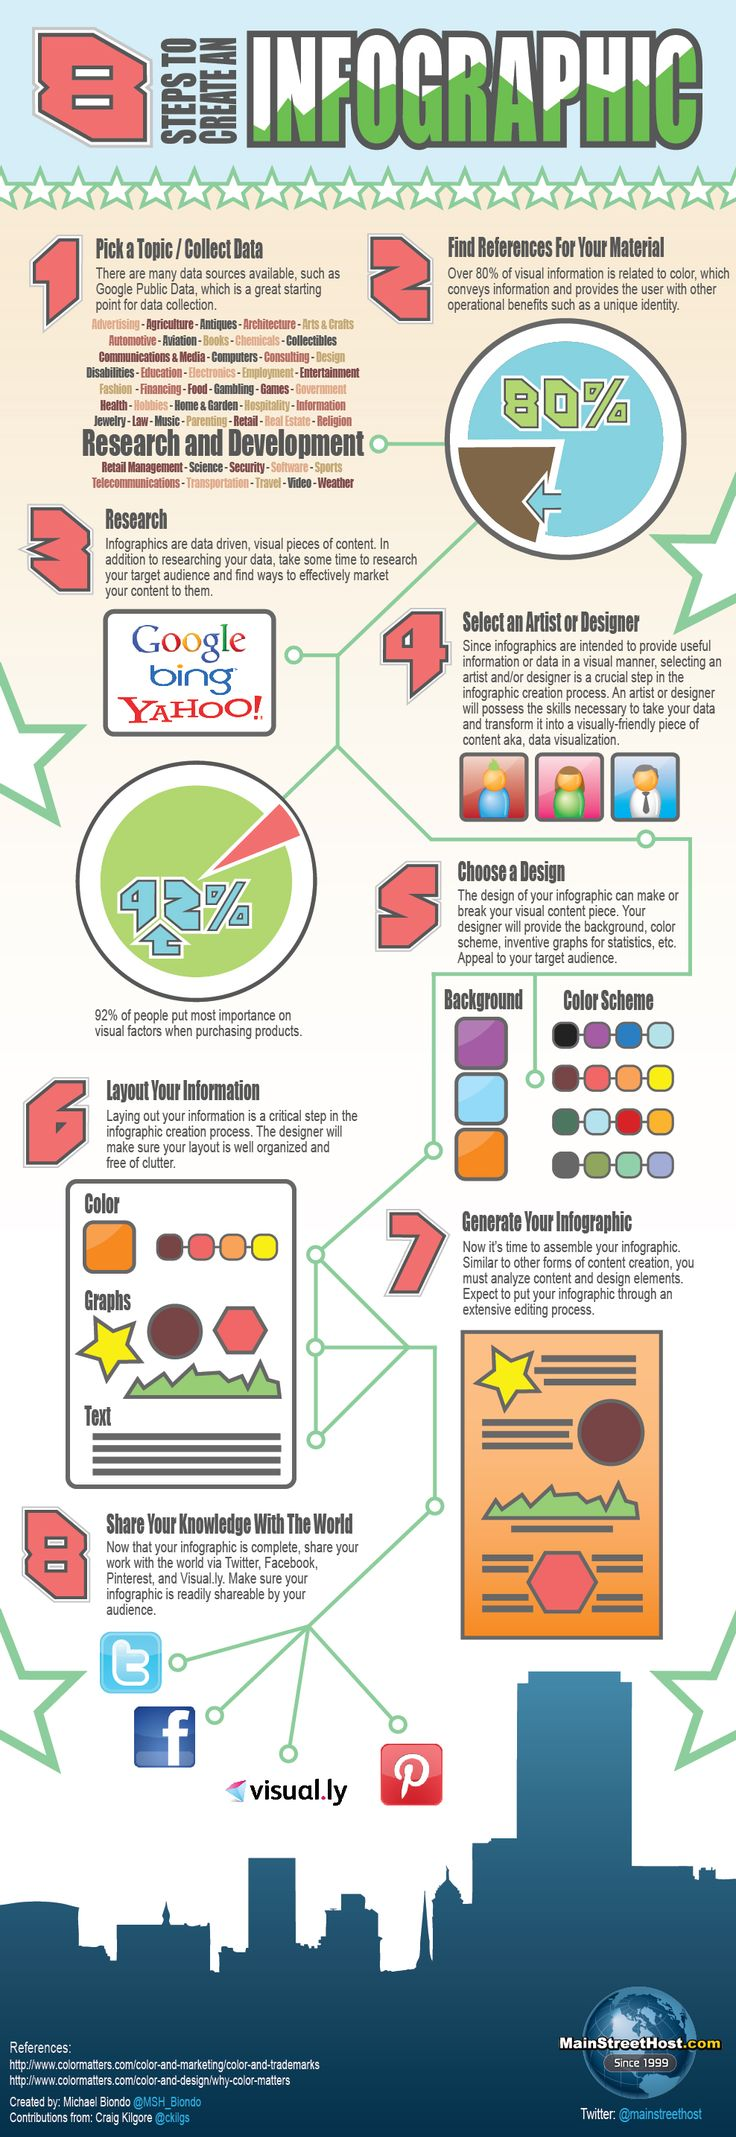 Best 25+ Create an infographic ideas on Pinterest ...